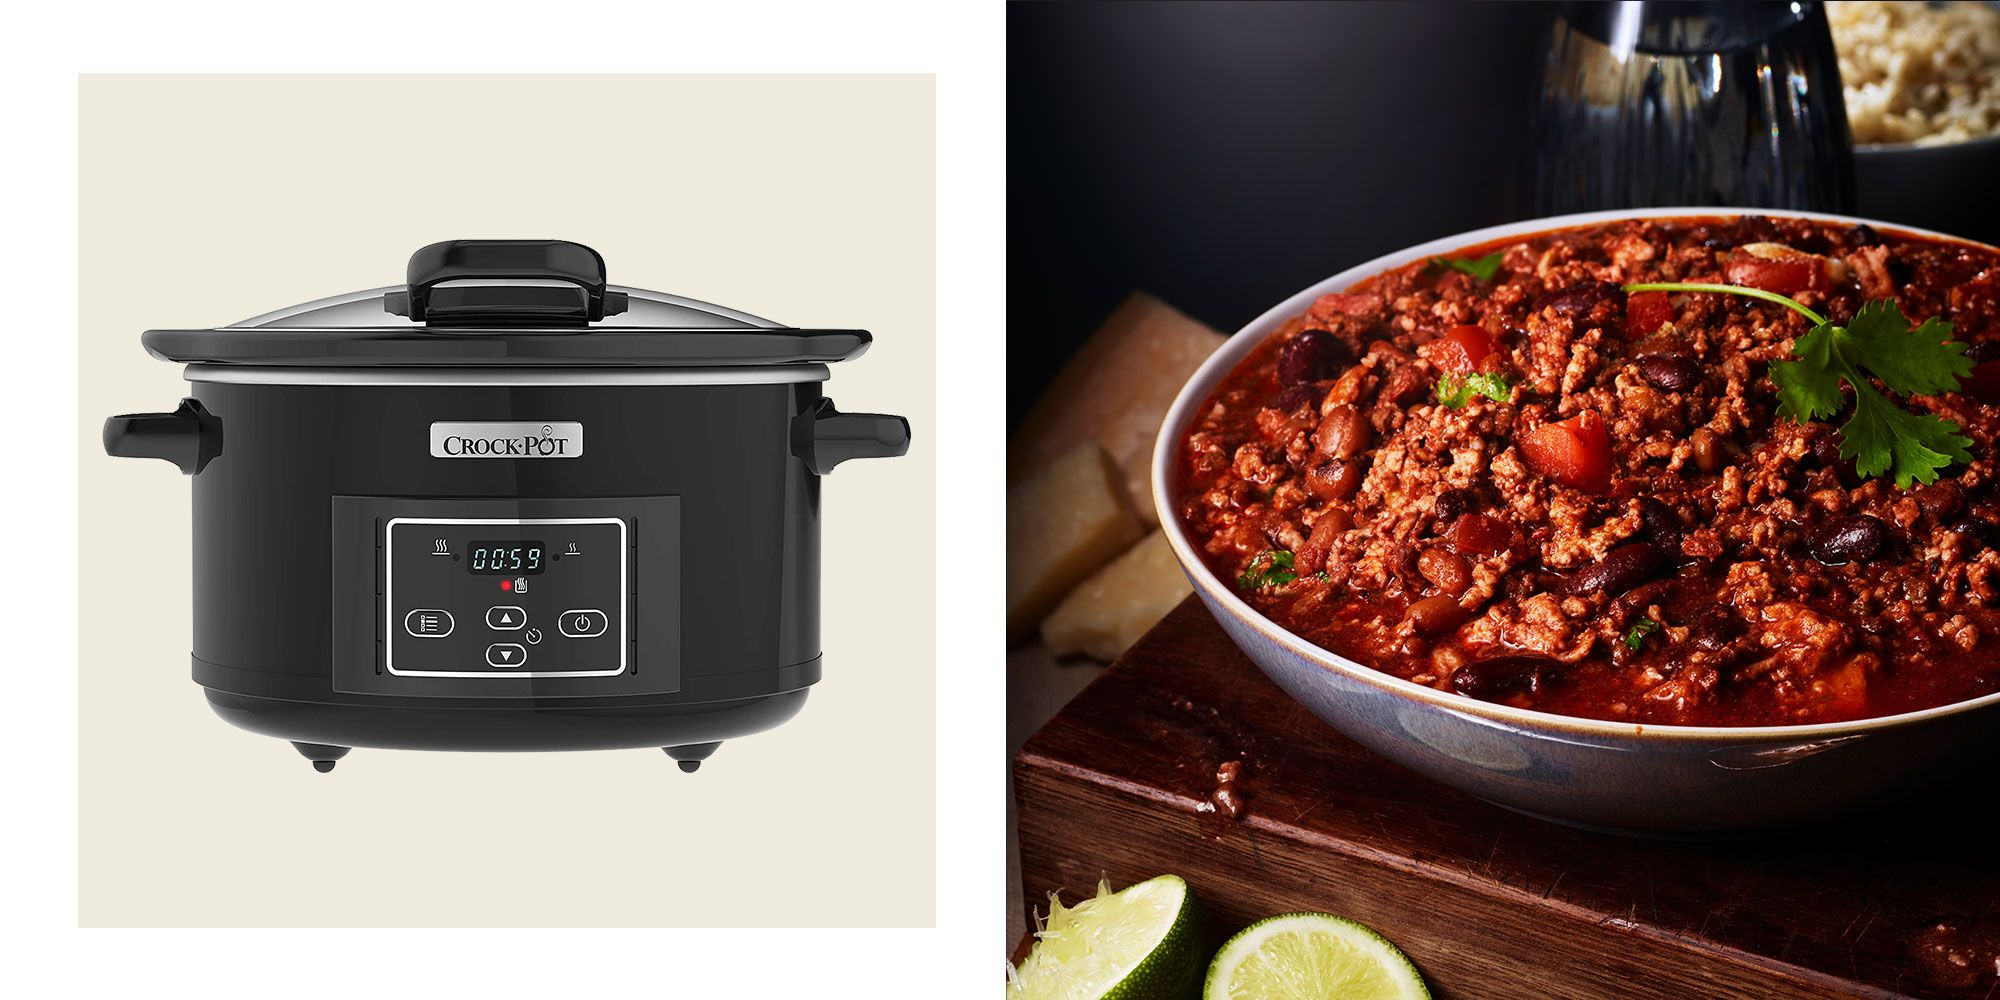 12 Best Slow Cookers For Stress-Free Healthy Meals